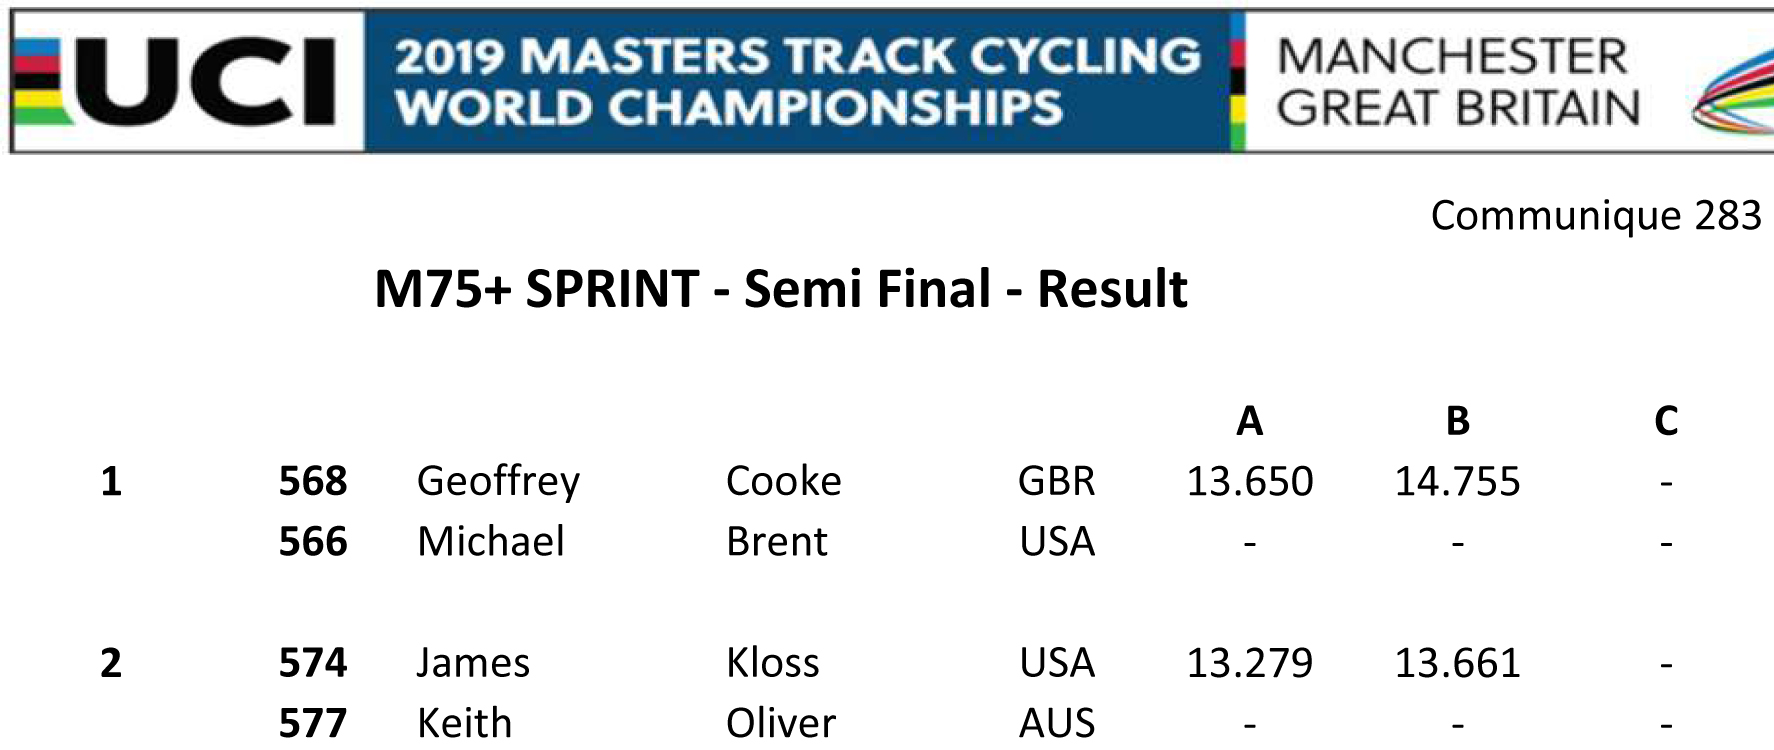 M75 SPRINT SEMI FINAL RESULT